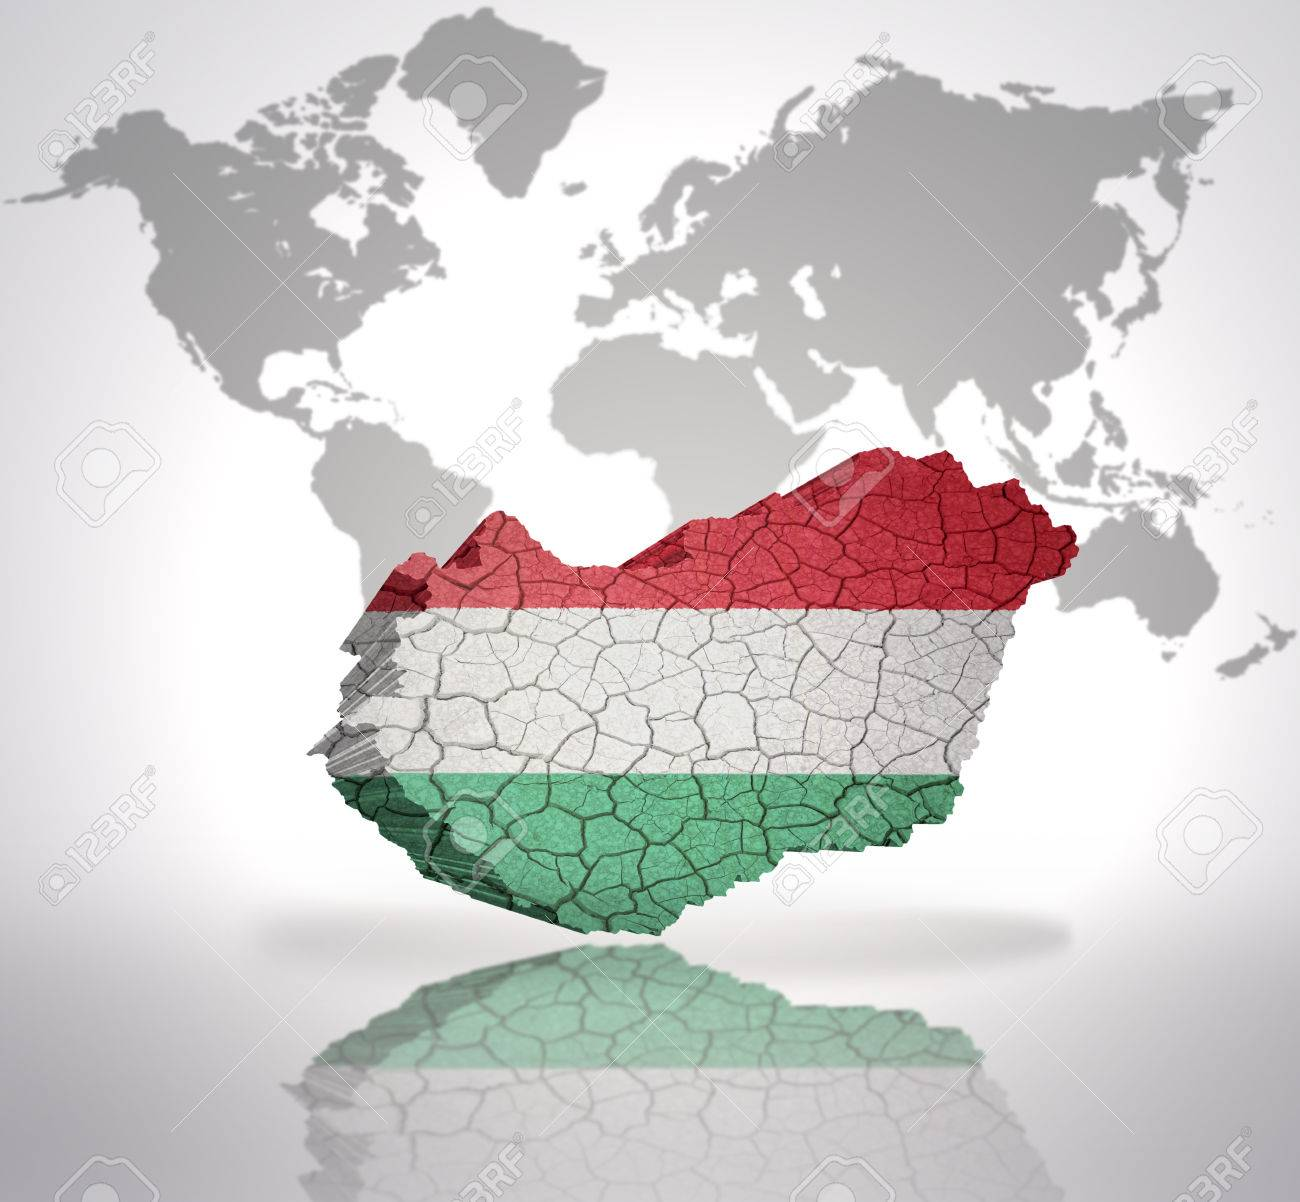 Map of hungary with hungarian flag on a world map background stock map of hungary with hungarian flag on a world map background stock photo 32714953 gumiabroncs Gallery